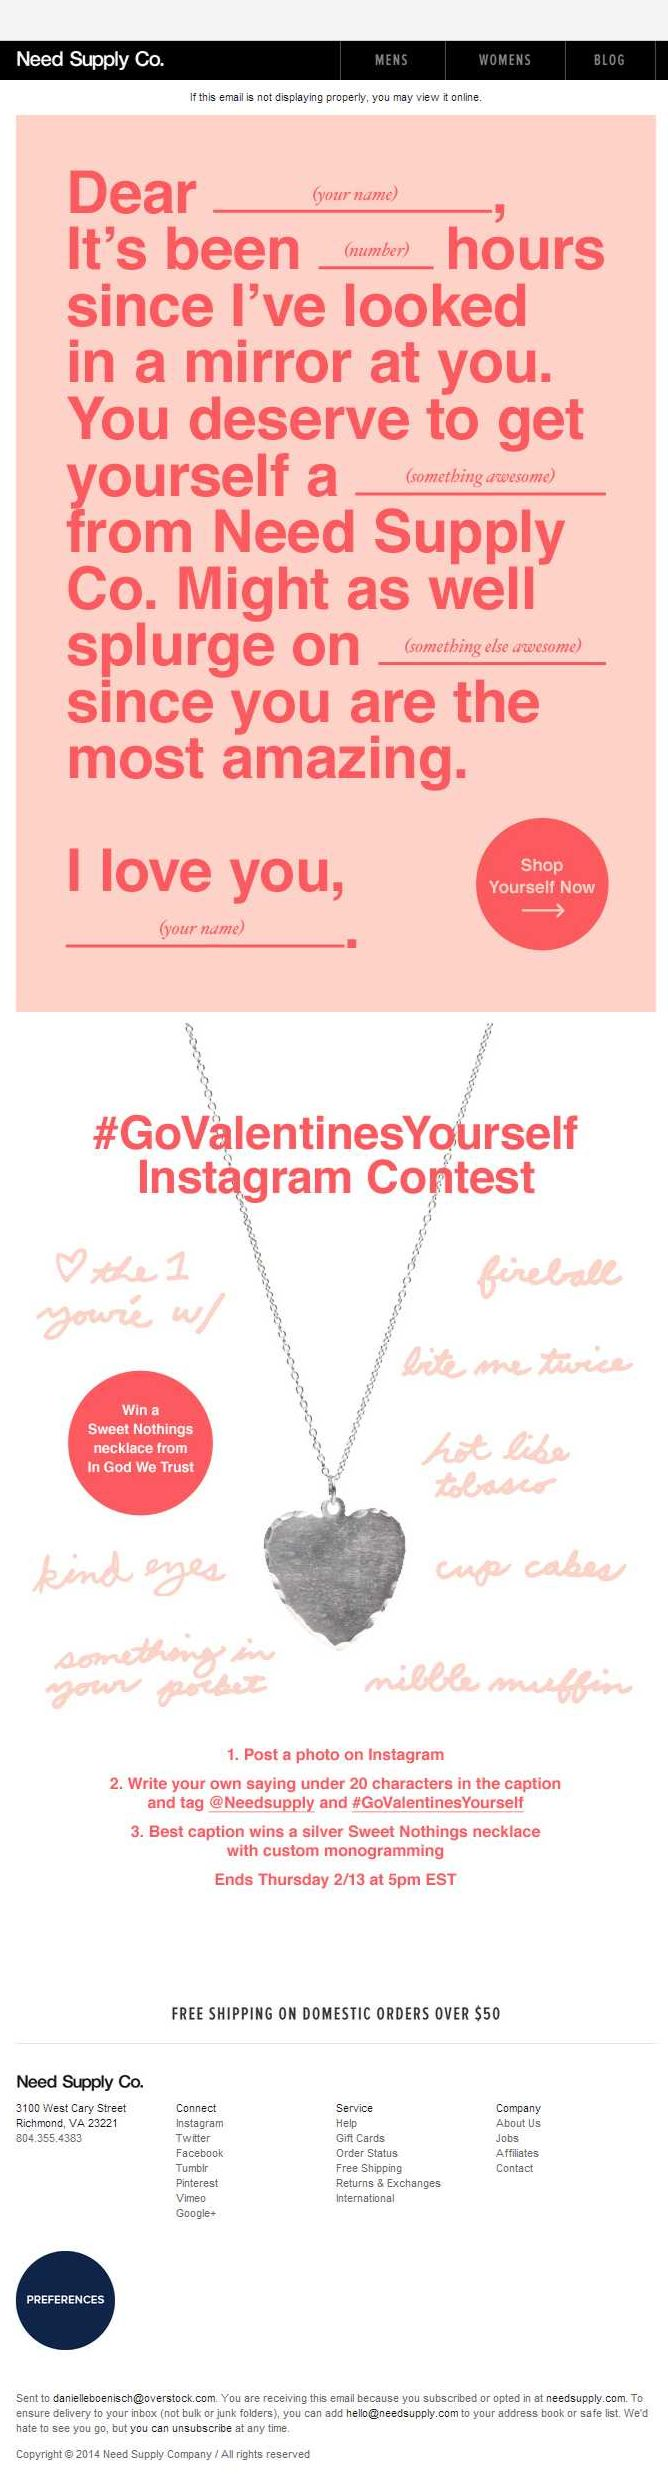 Need Supply Co. Valentine's Day email 2/14/2014